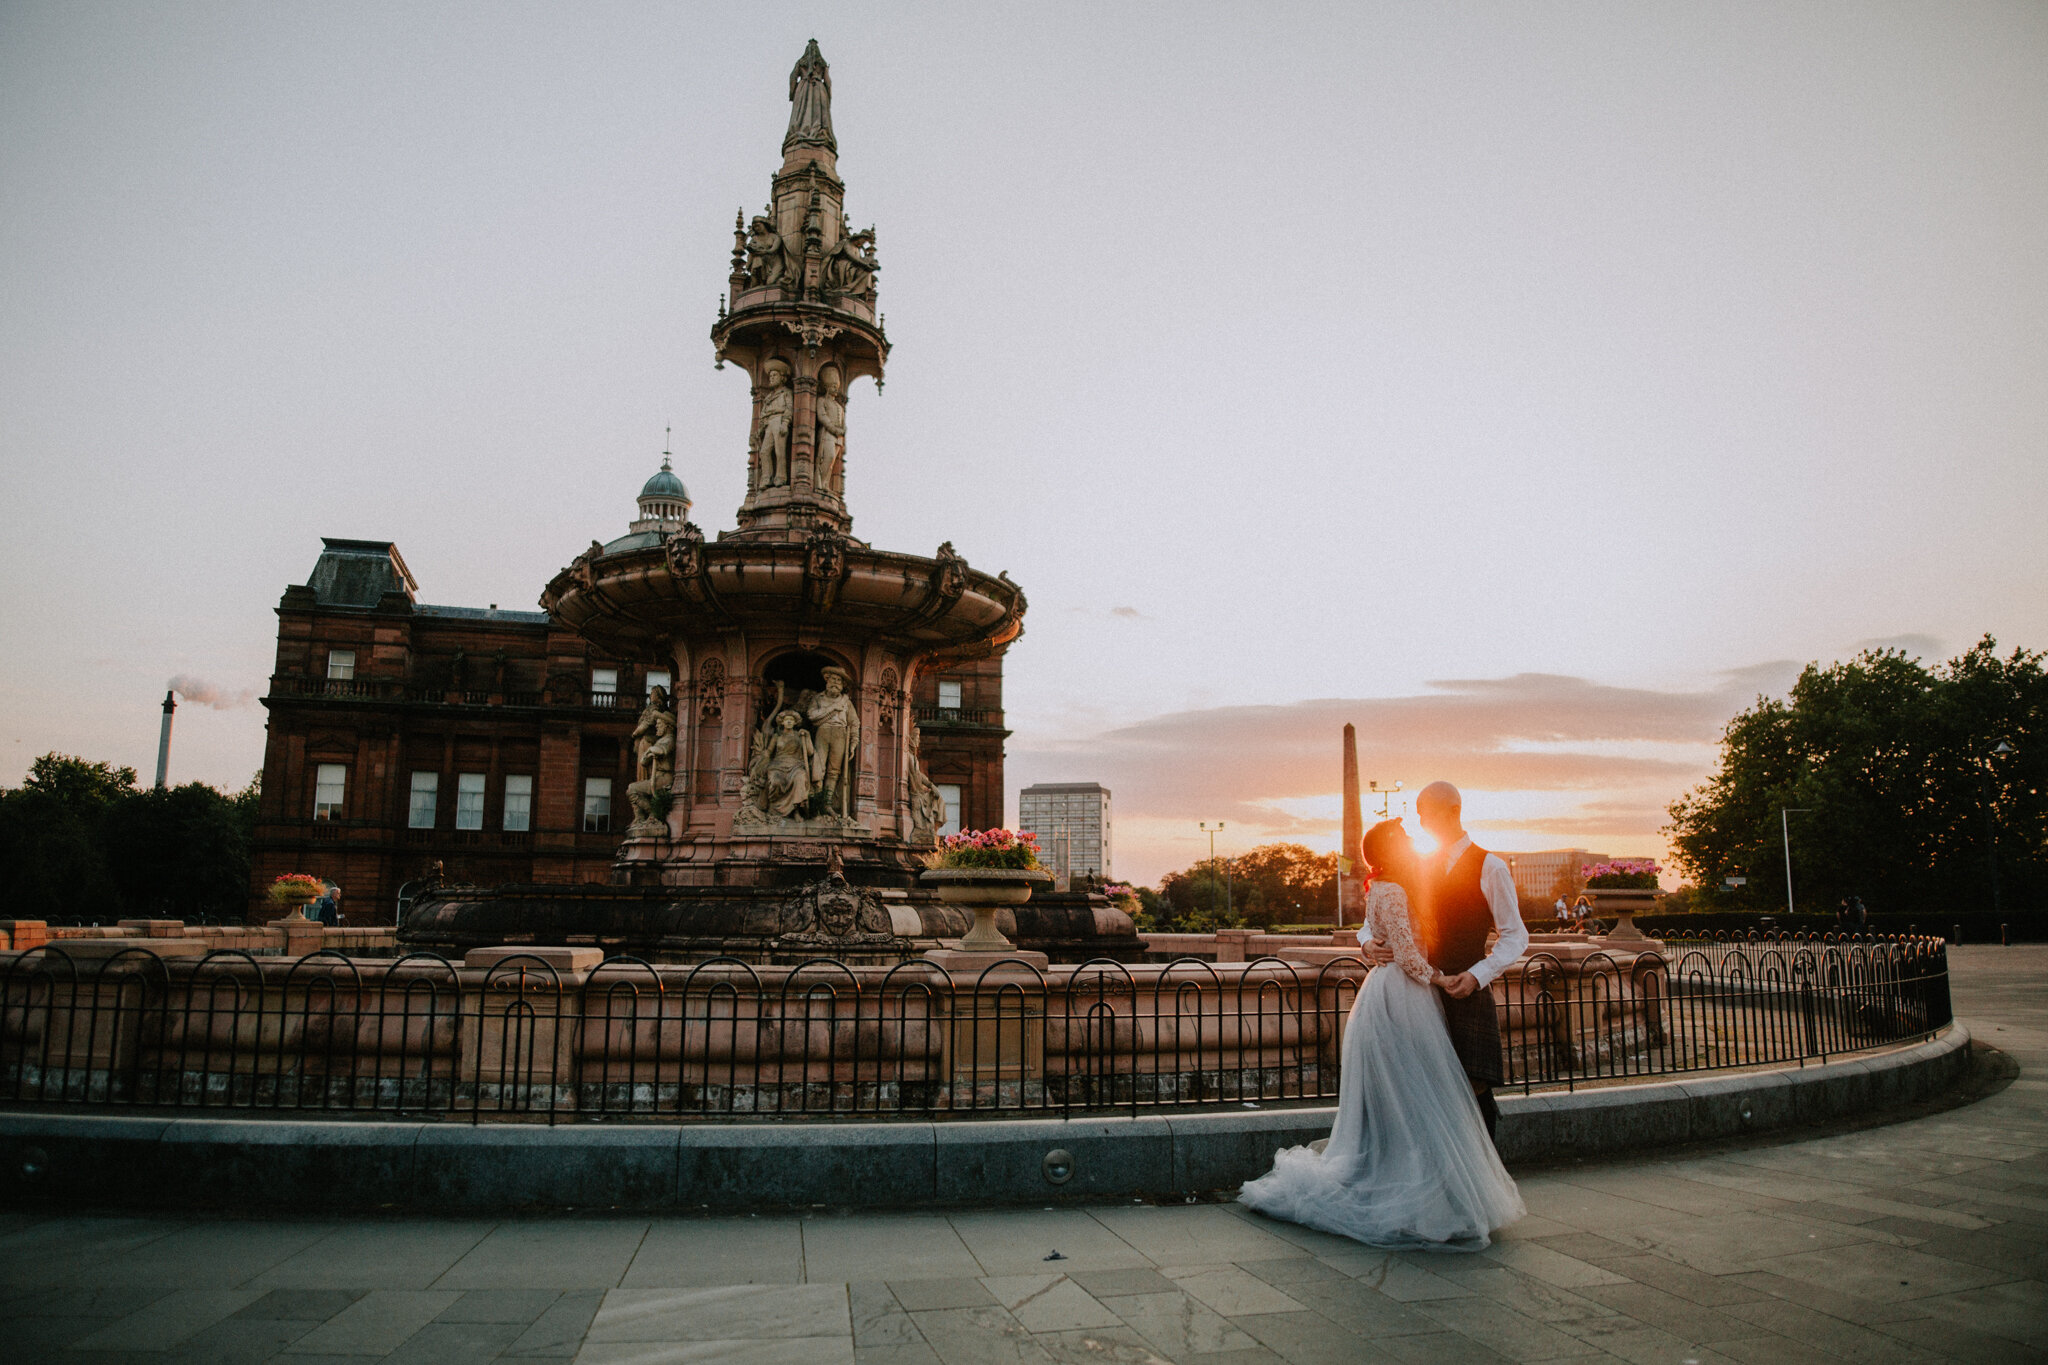 Golden sunset photo at the Glasgow Green for the newlyweds